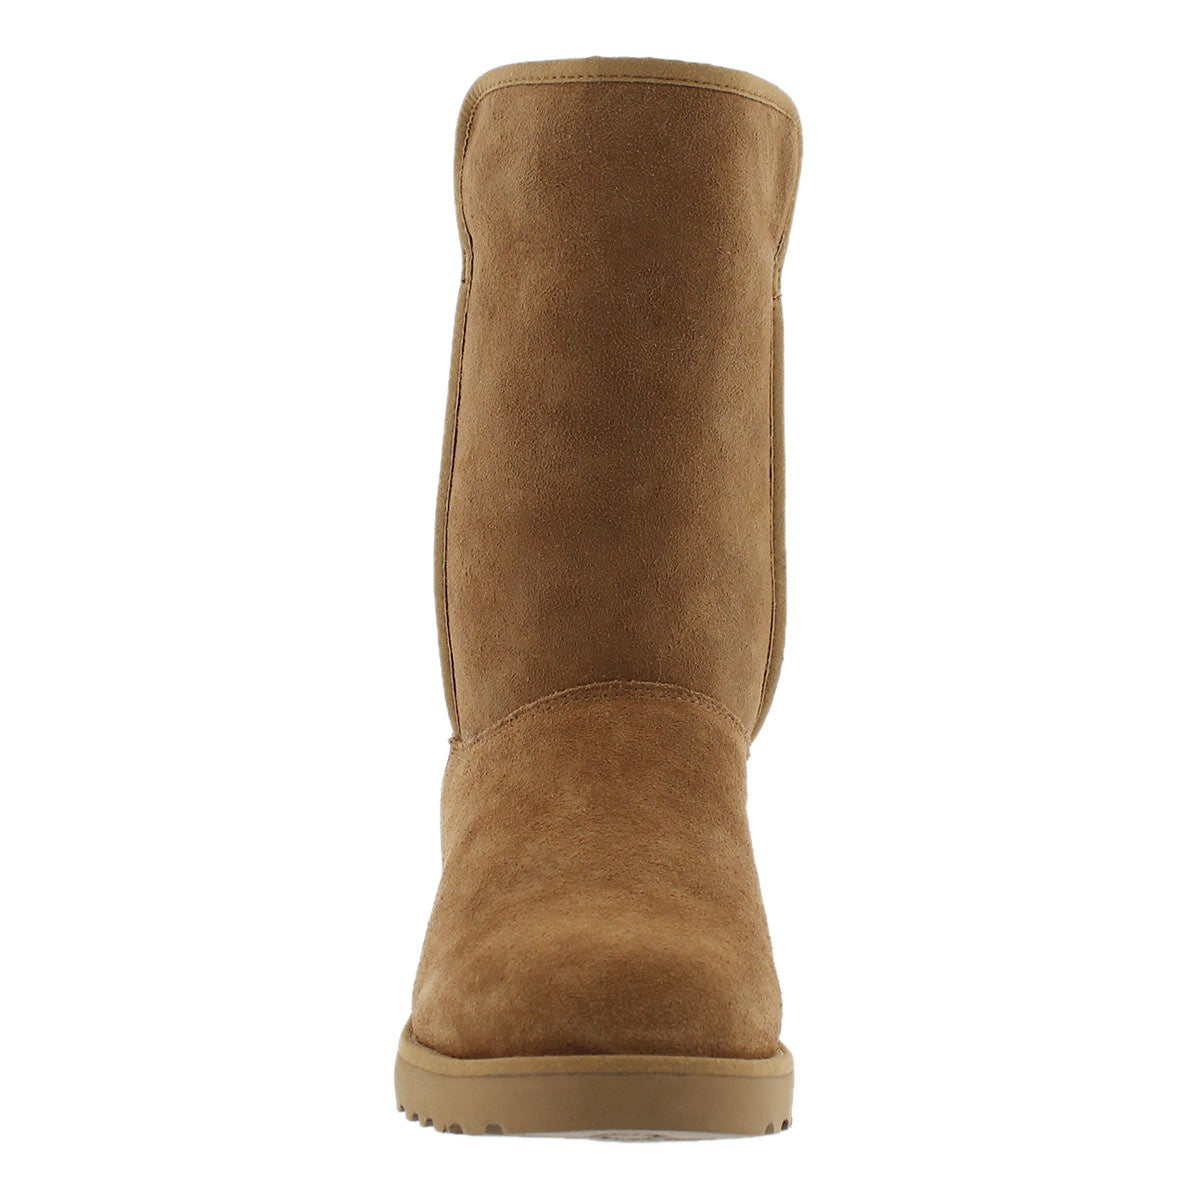 Lds Amie ches tall wedge sheepskin boot